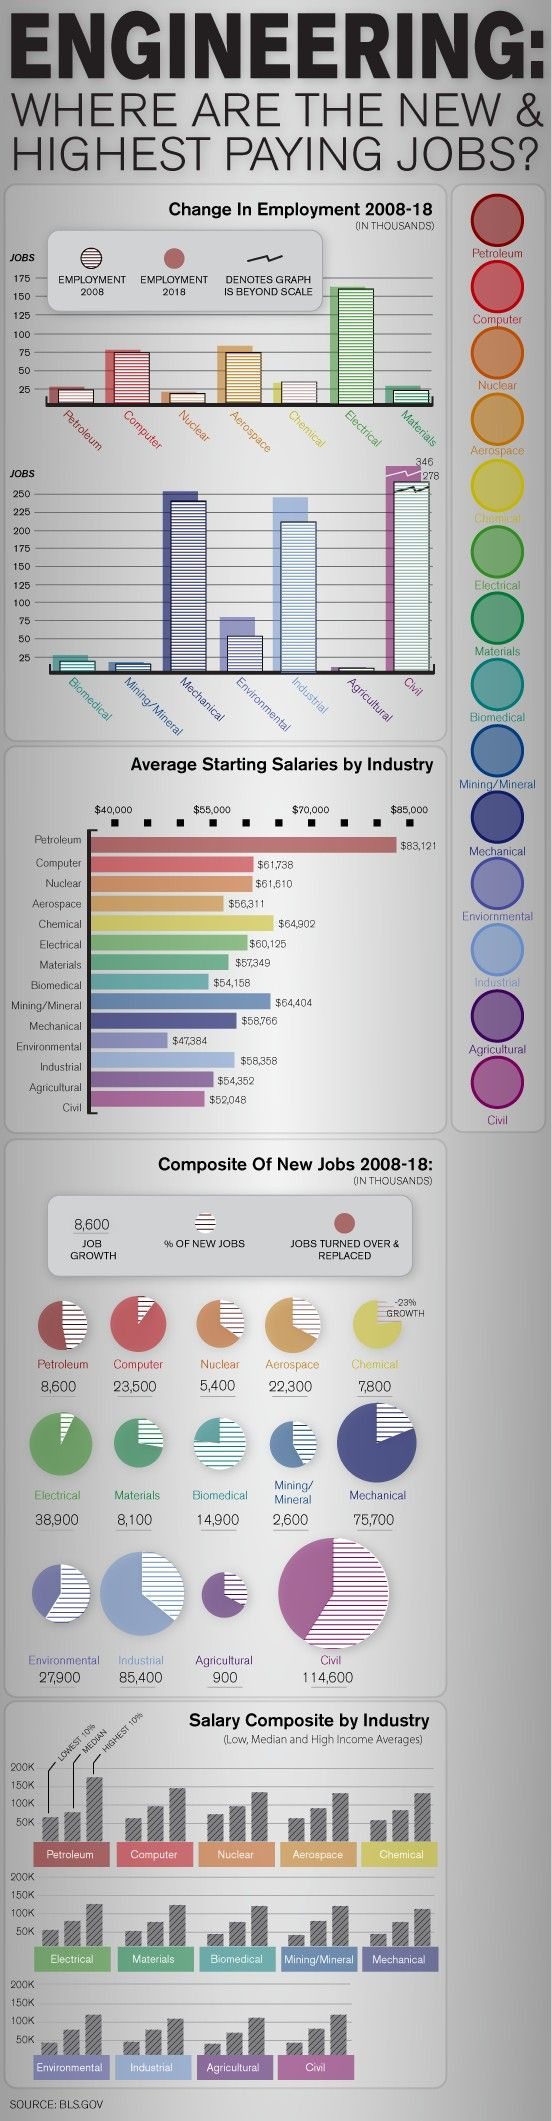 Engineering Jobs and Salary Outlook: GlobalSpec Insights